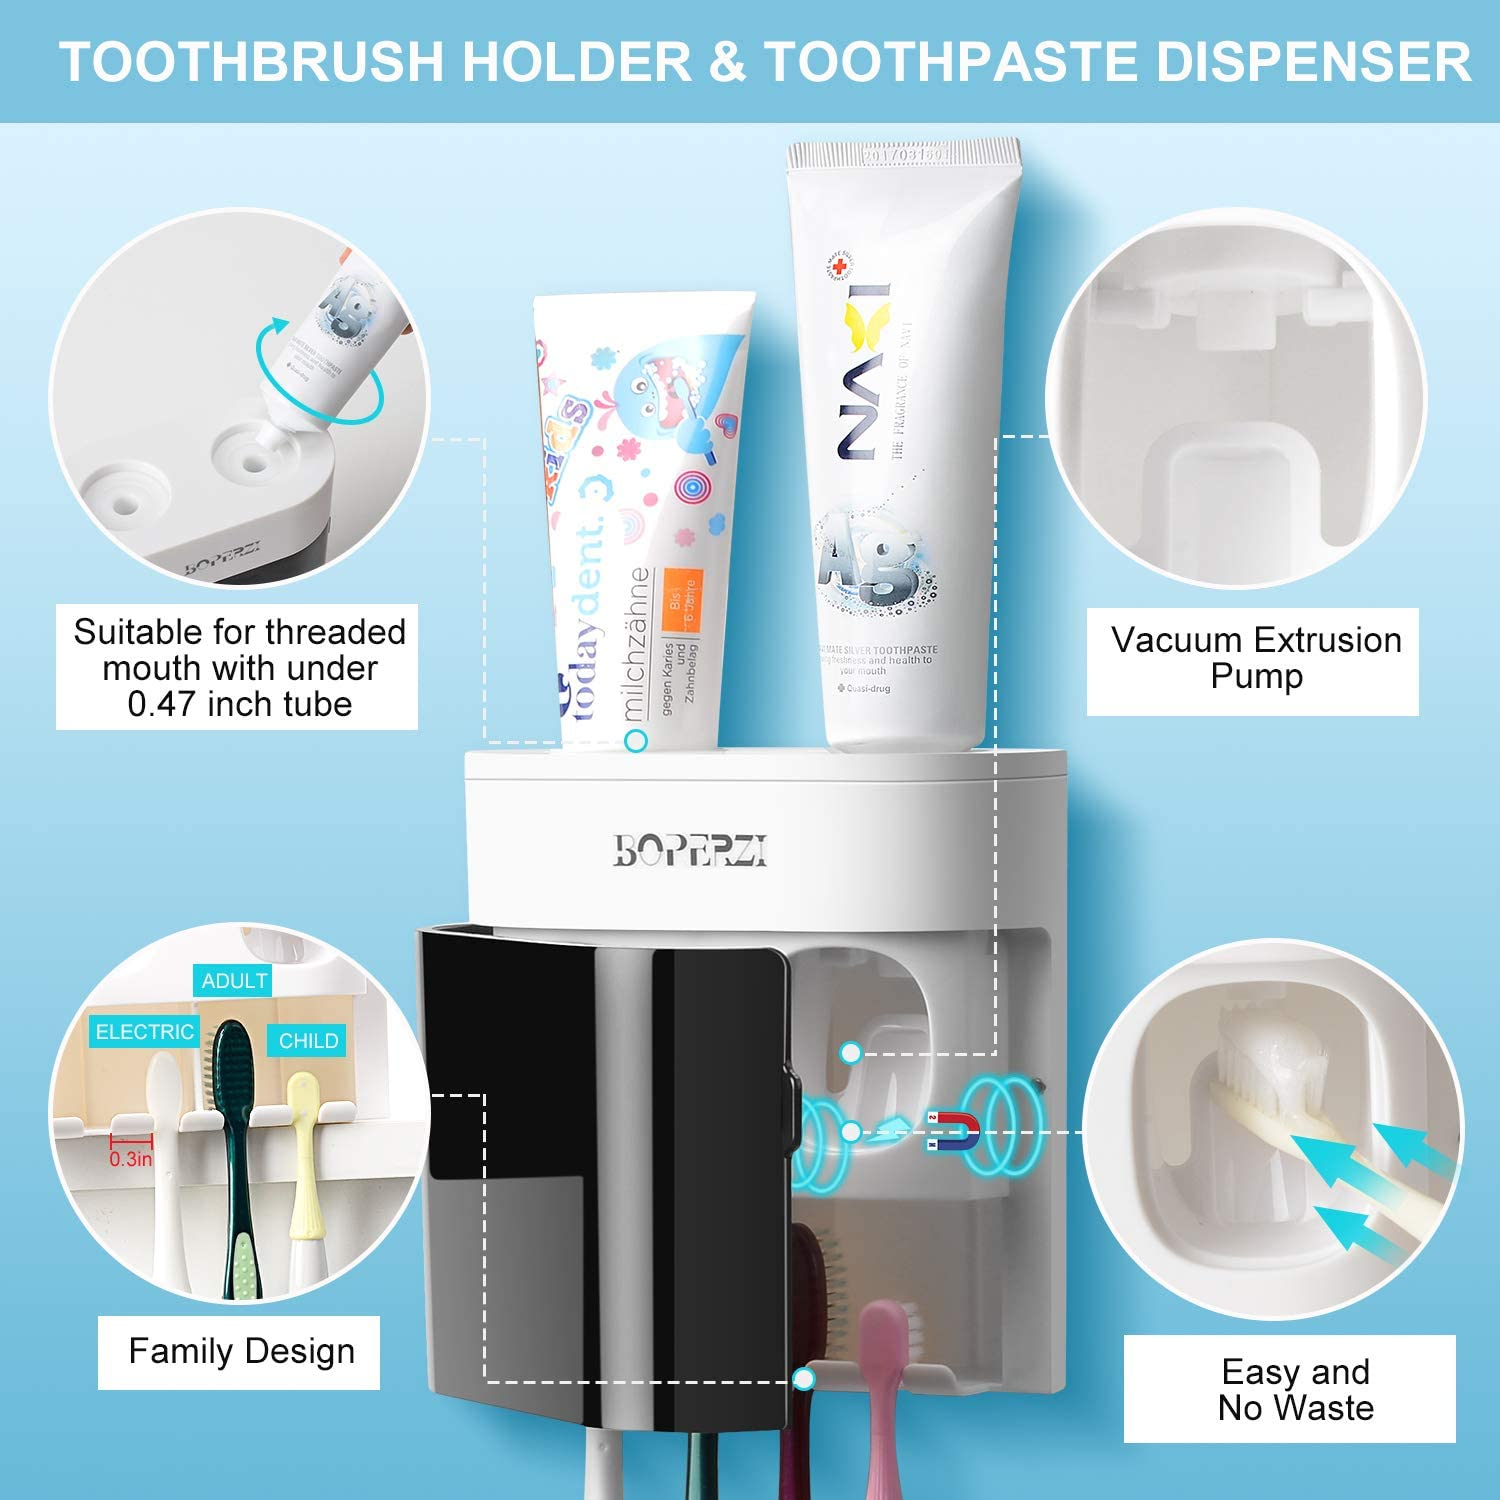 Boperzi Toothbrush Holder Wall Mounted Automatic Toothpaste Dispenser Dustproof Cover Electric Toothbrush Holder for Shower Bathroom Set with 2 Toothpaste Squeezers